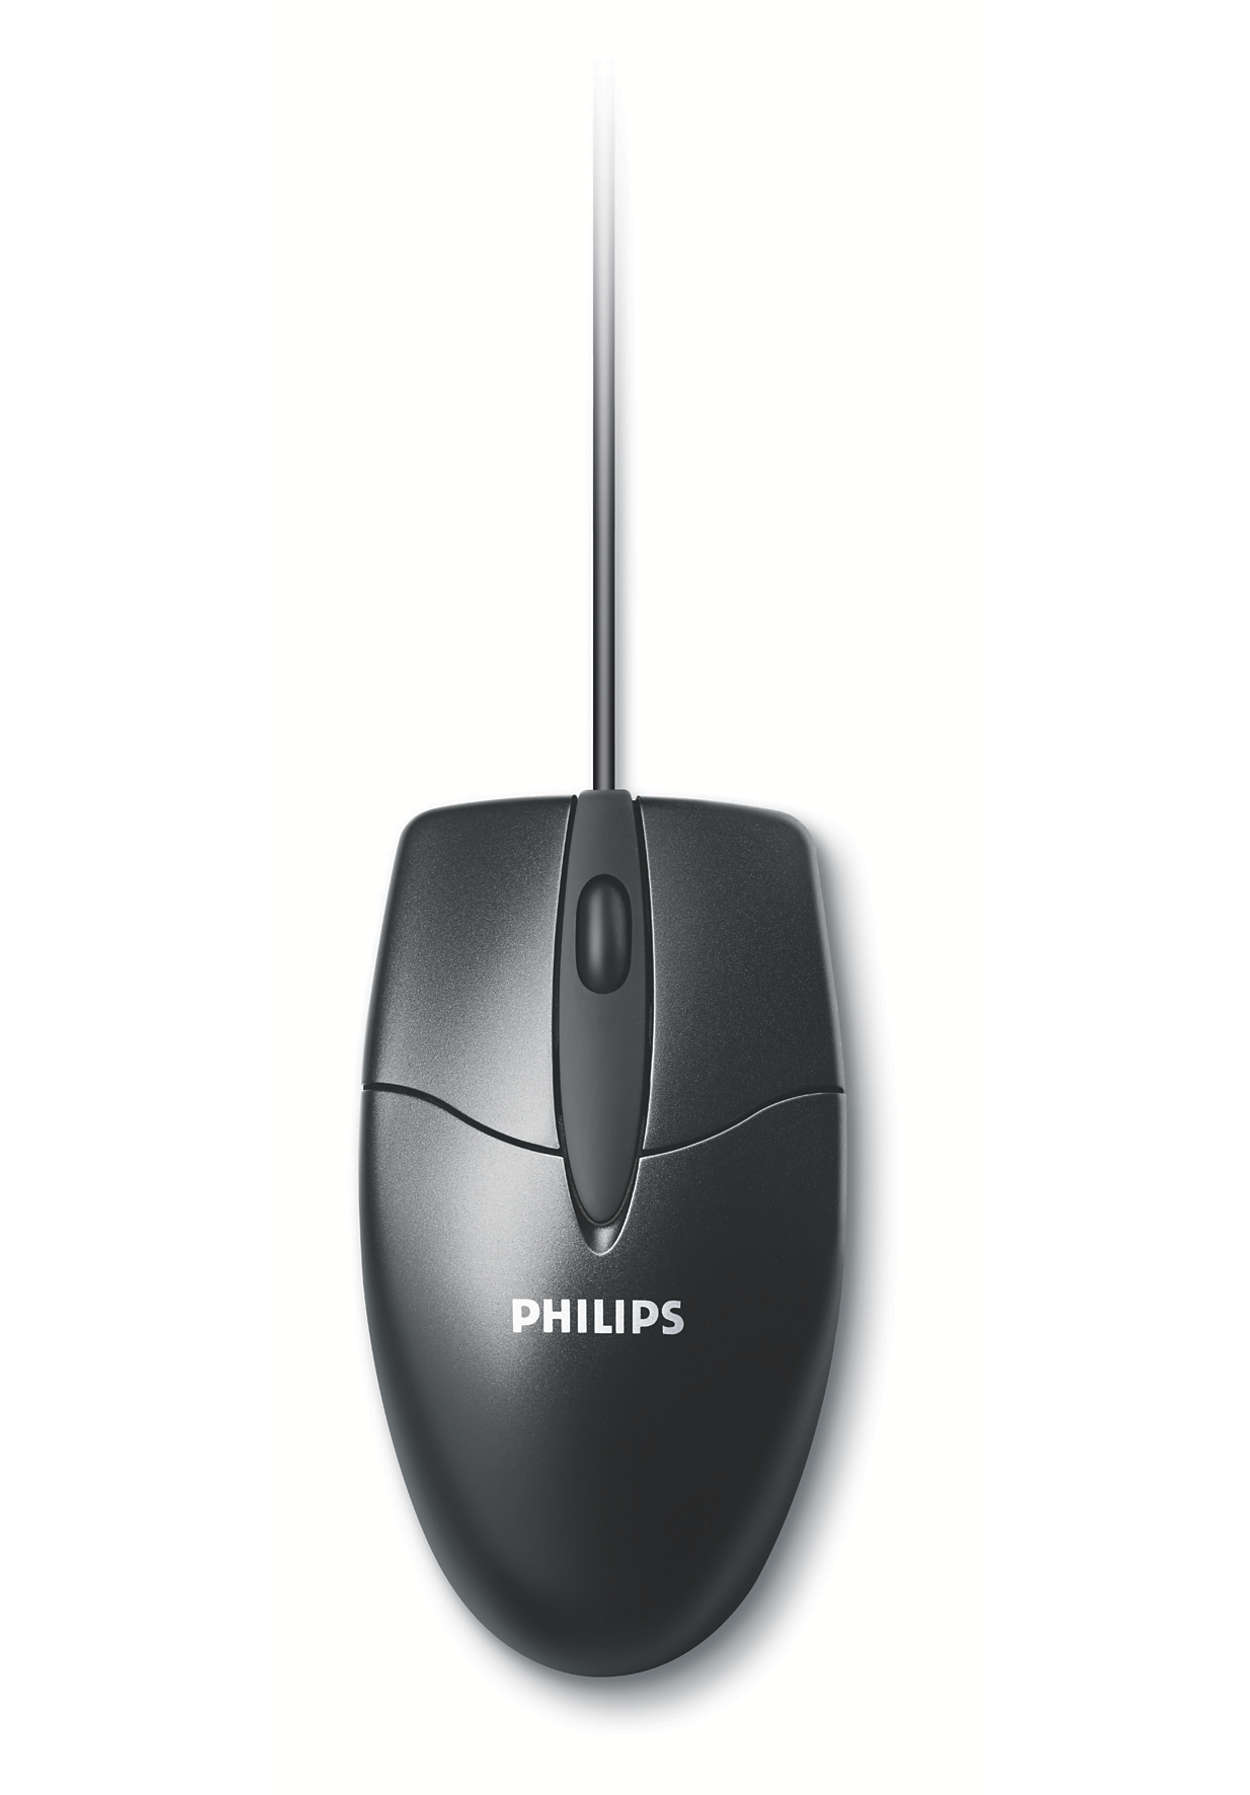 Wired optical mouse